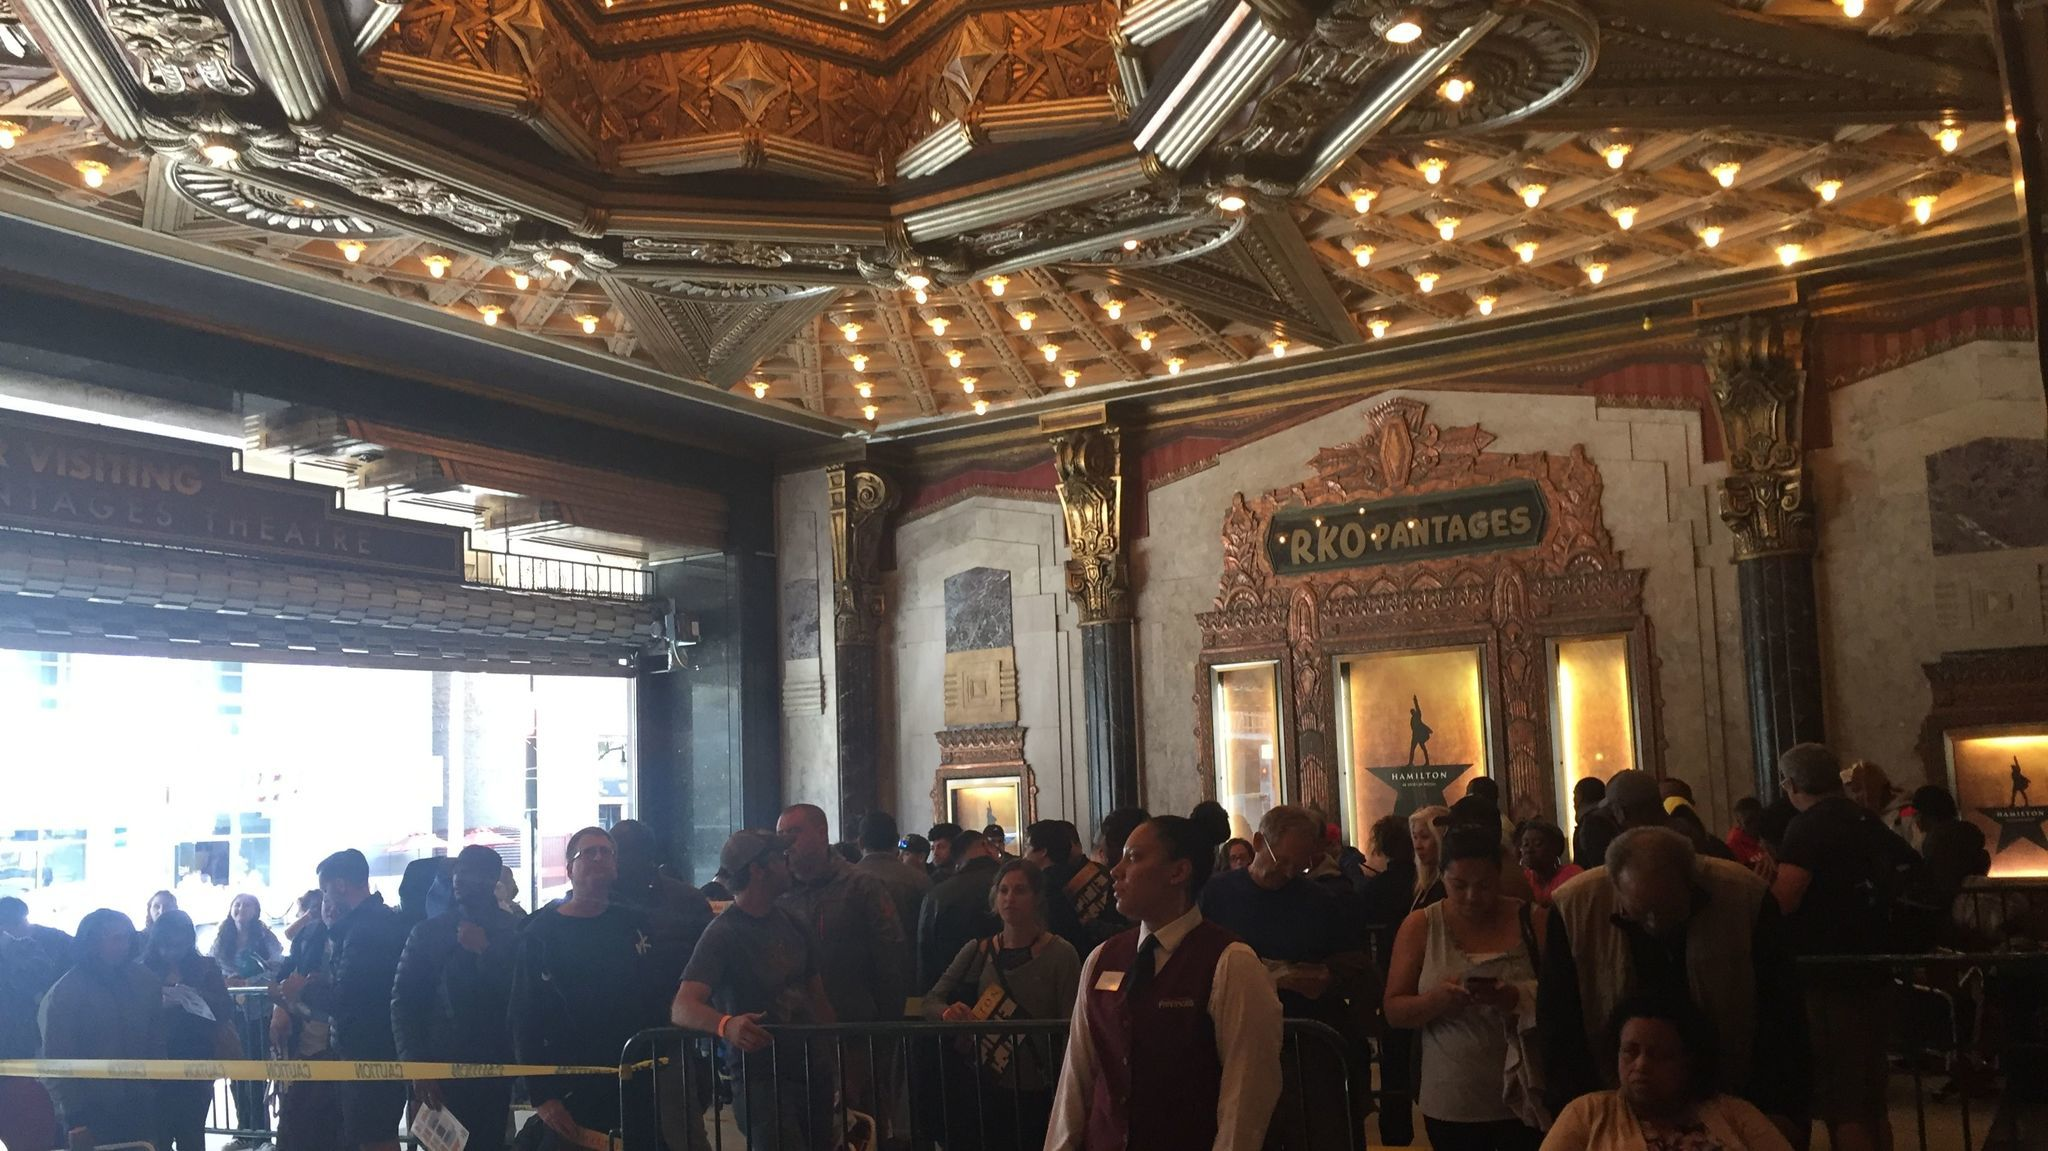 At 6 a.m. Pantages staff began allowing the line into its lobby, where some people spent the time sleeping. At five minutes until 10 a.m., the line was funneled out to the front of the theater where the box office stood ready to open.